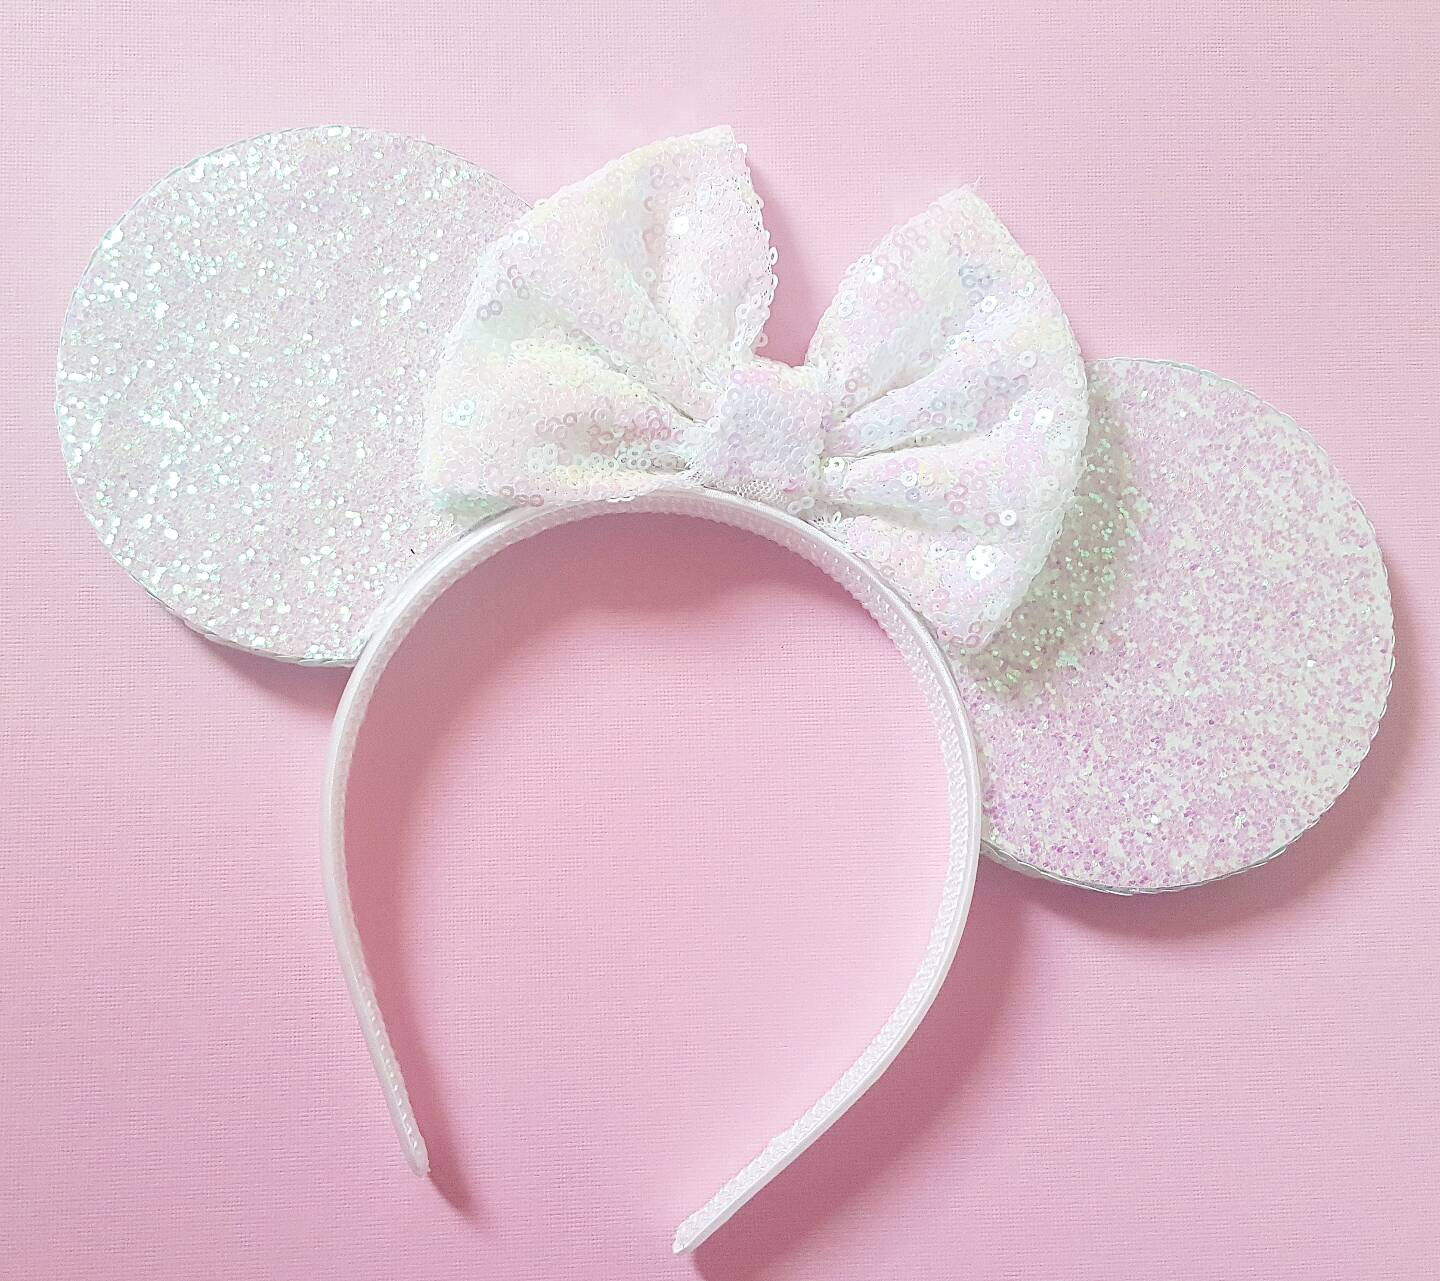 Irredescent Glittery White Mouse Ears Minnie Mouse Ears